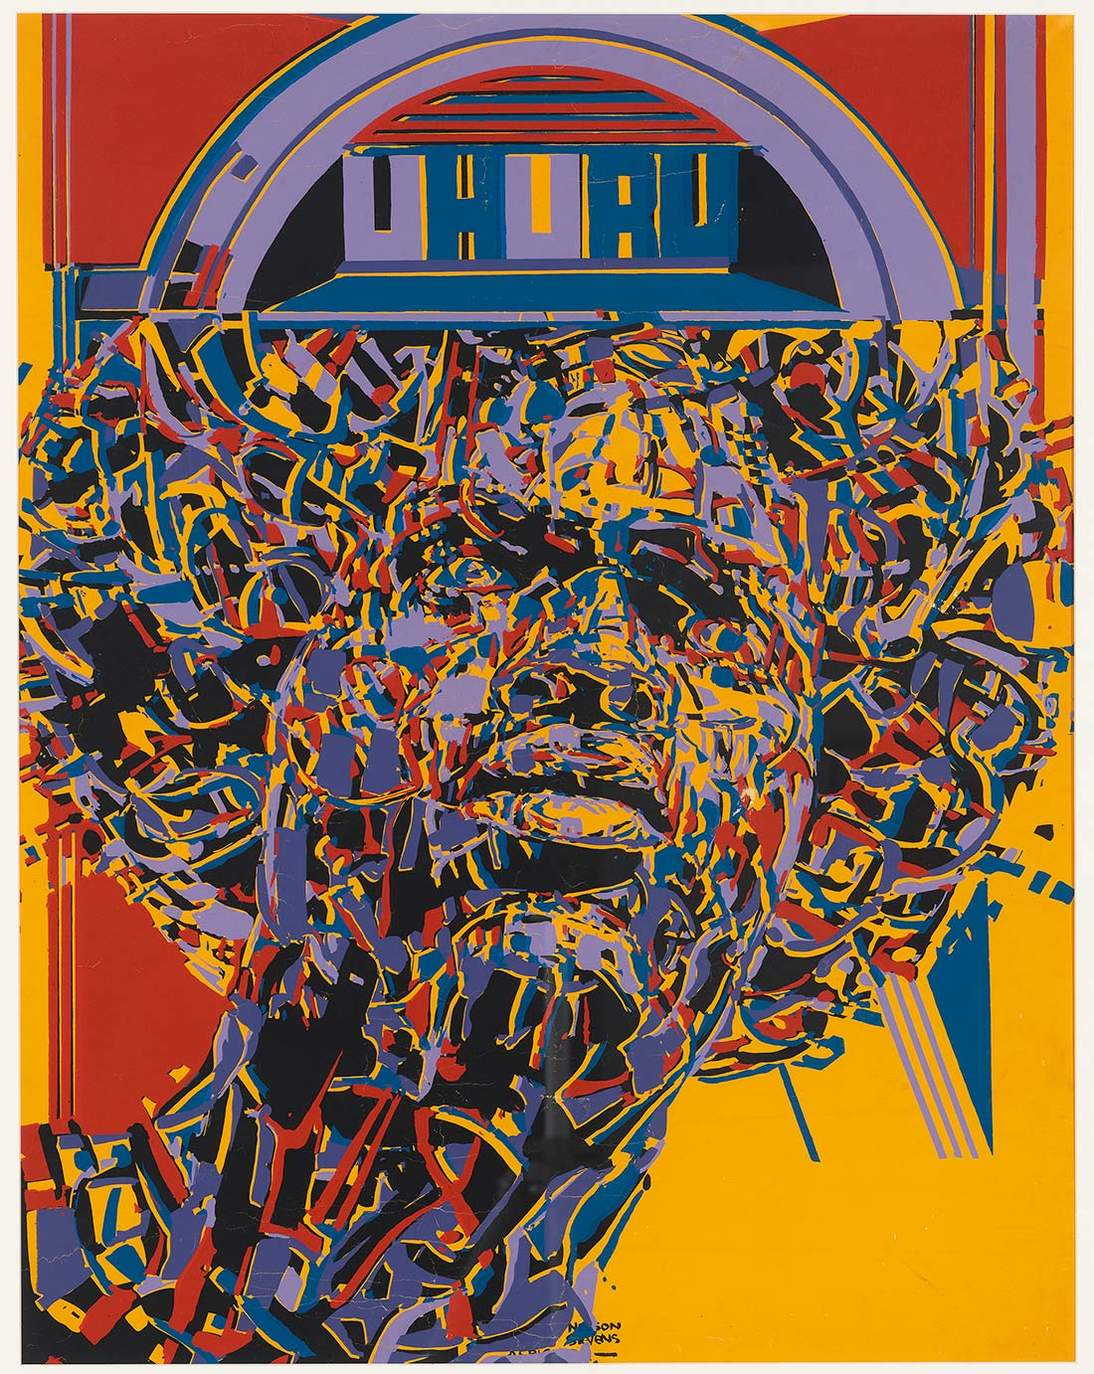 """Nelson Stevens, """"Uhuru,"""" 1971. Screenprint on paper. Tate, London, Purchased with assistance from the Ford Foundation 2018 © Nelson Stevens"""